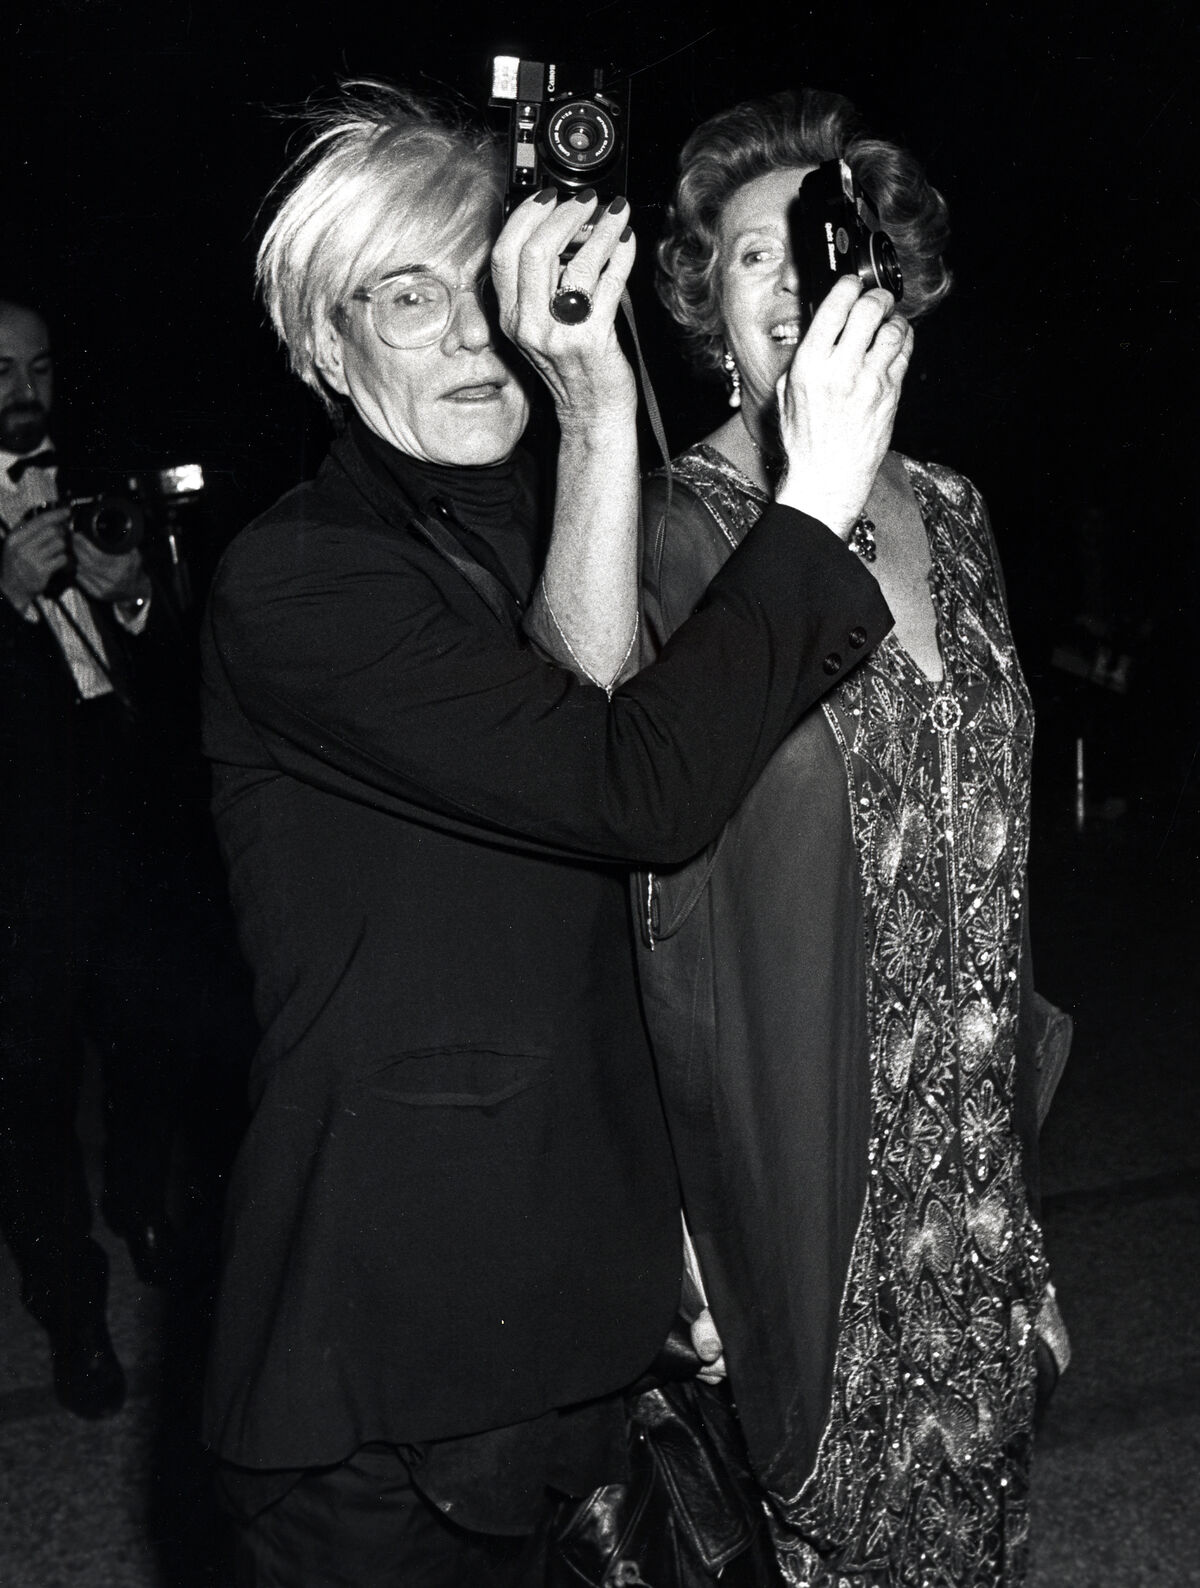 """Andy Warhol and Princess Mani Sayn von Witgenstein at the """"14th Annual Diana Vreeland Costume Exhibit Dance,"""" at the Metropolitan Museum of Art, New York, 1985. Photo by Ron Galella/WireImage"""